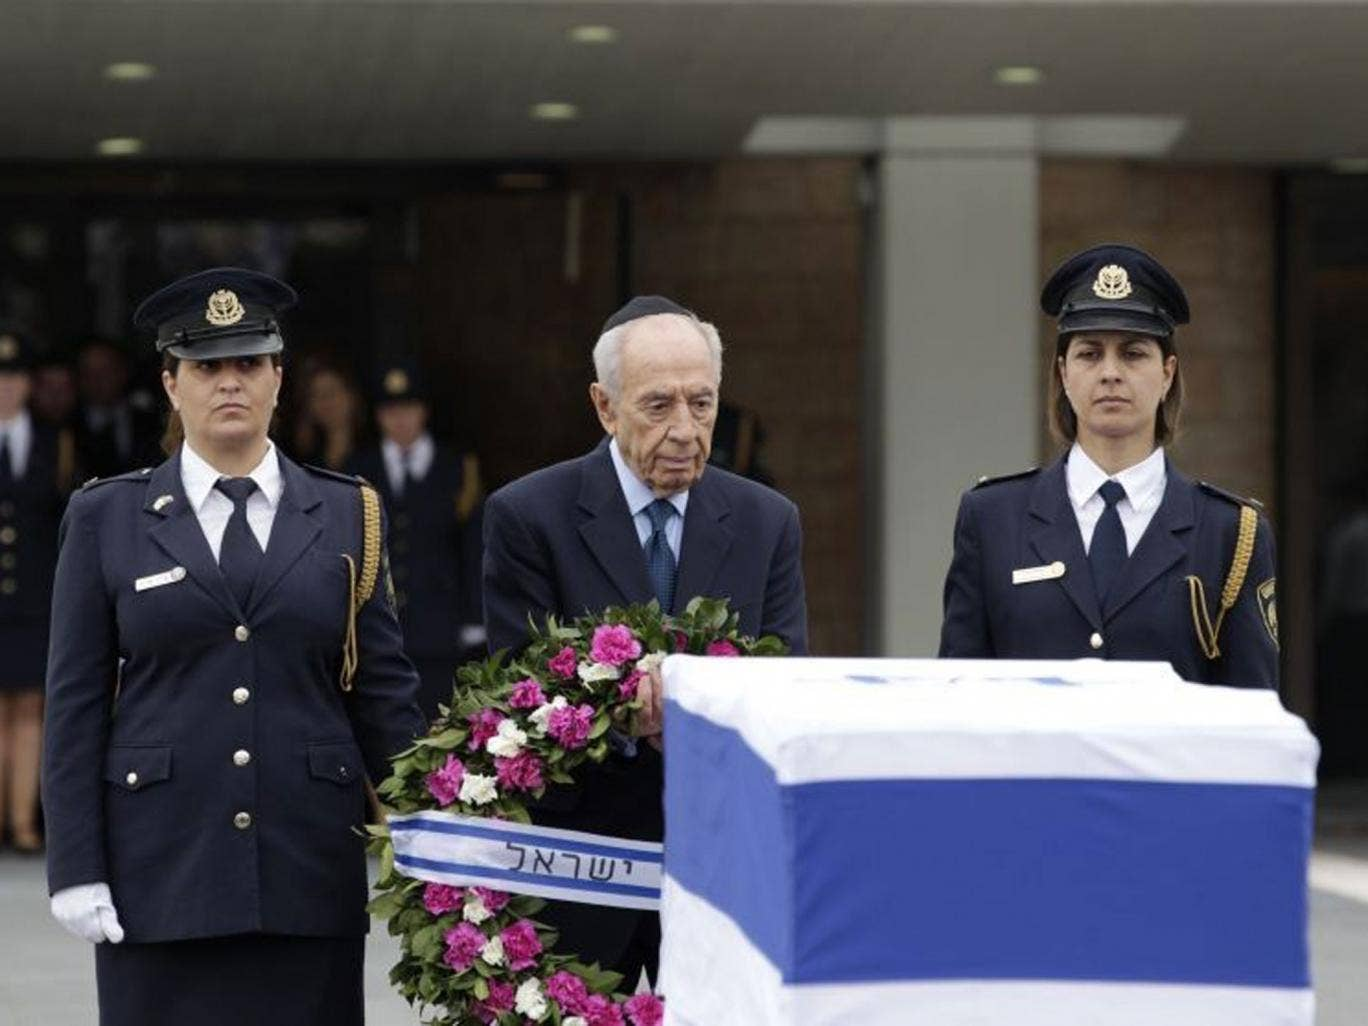 Israel's president Shimon Peres prepares to lay a wreath on the coffin of former prime minister Ariel Sharon